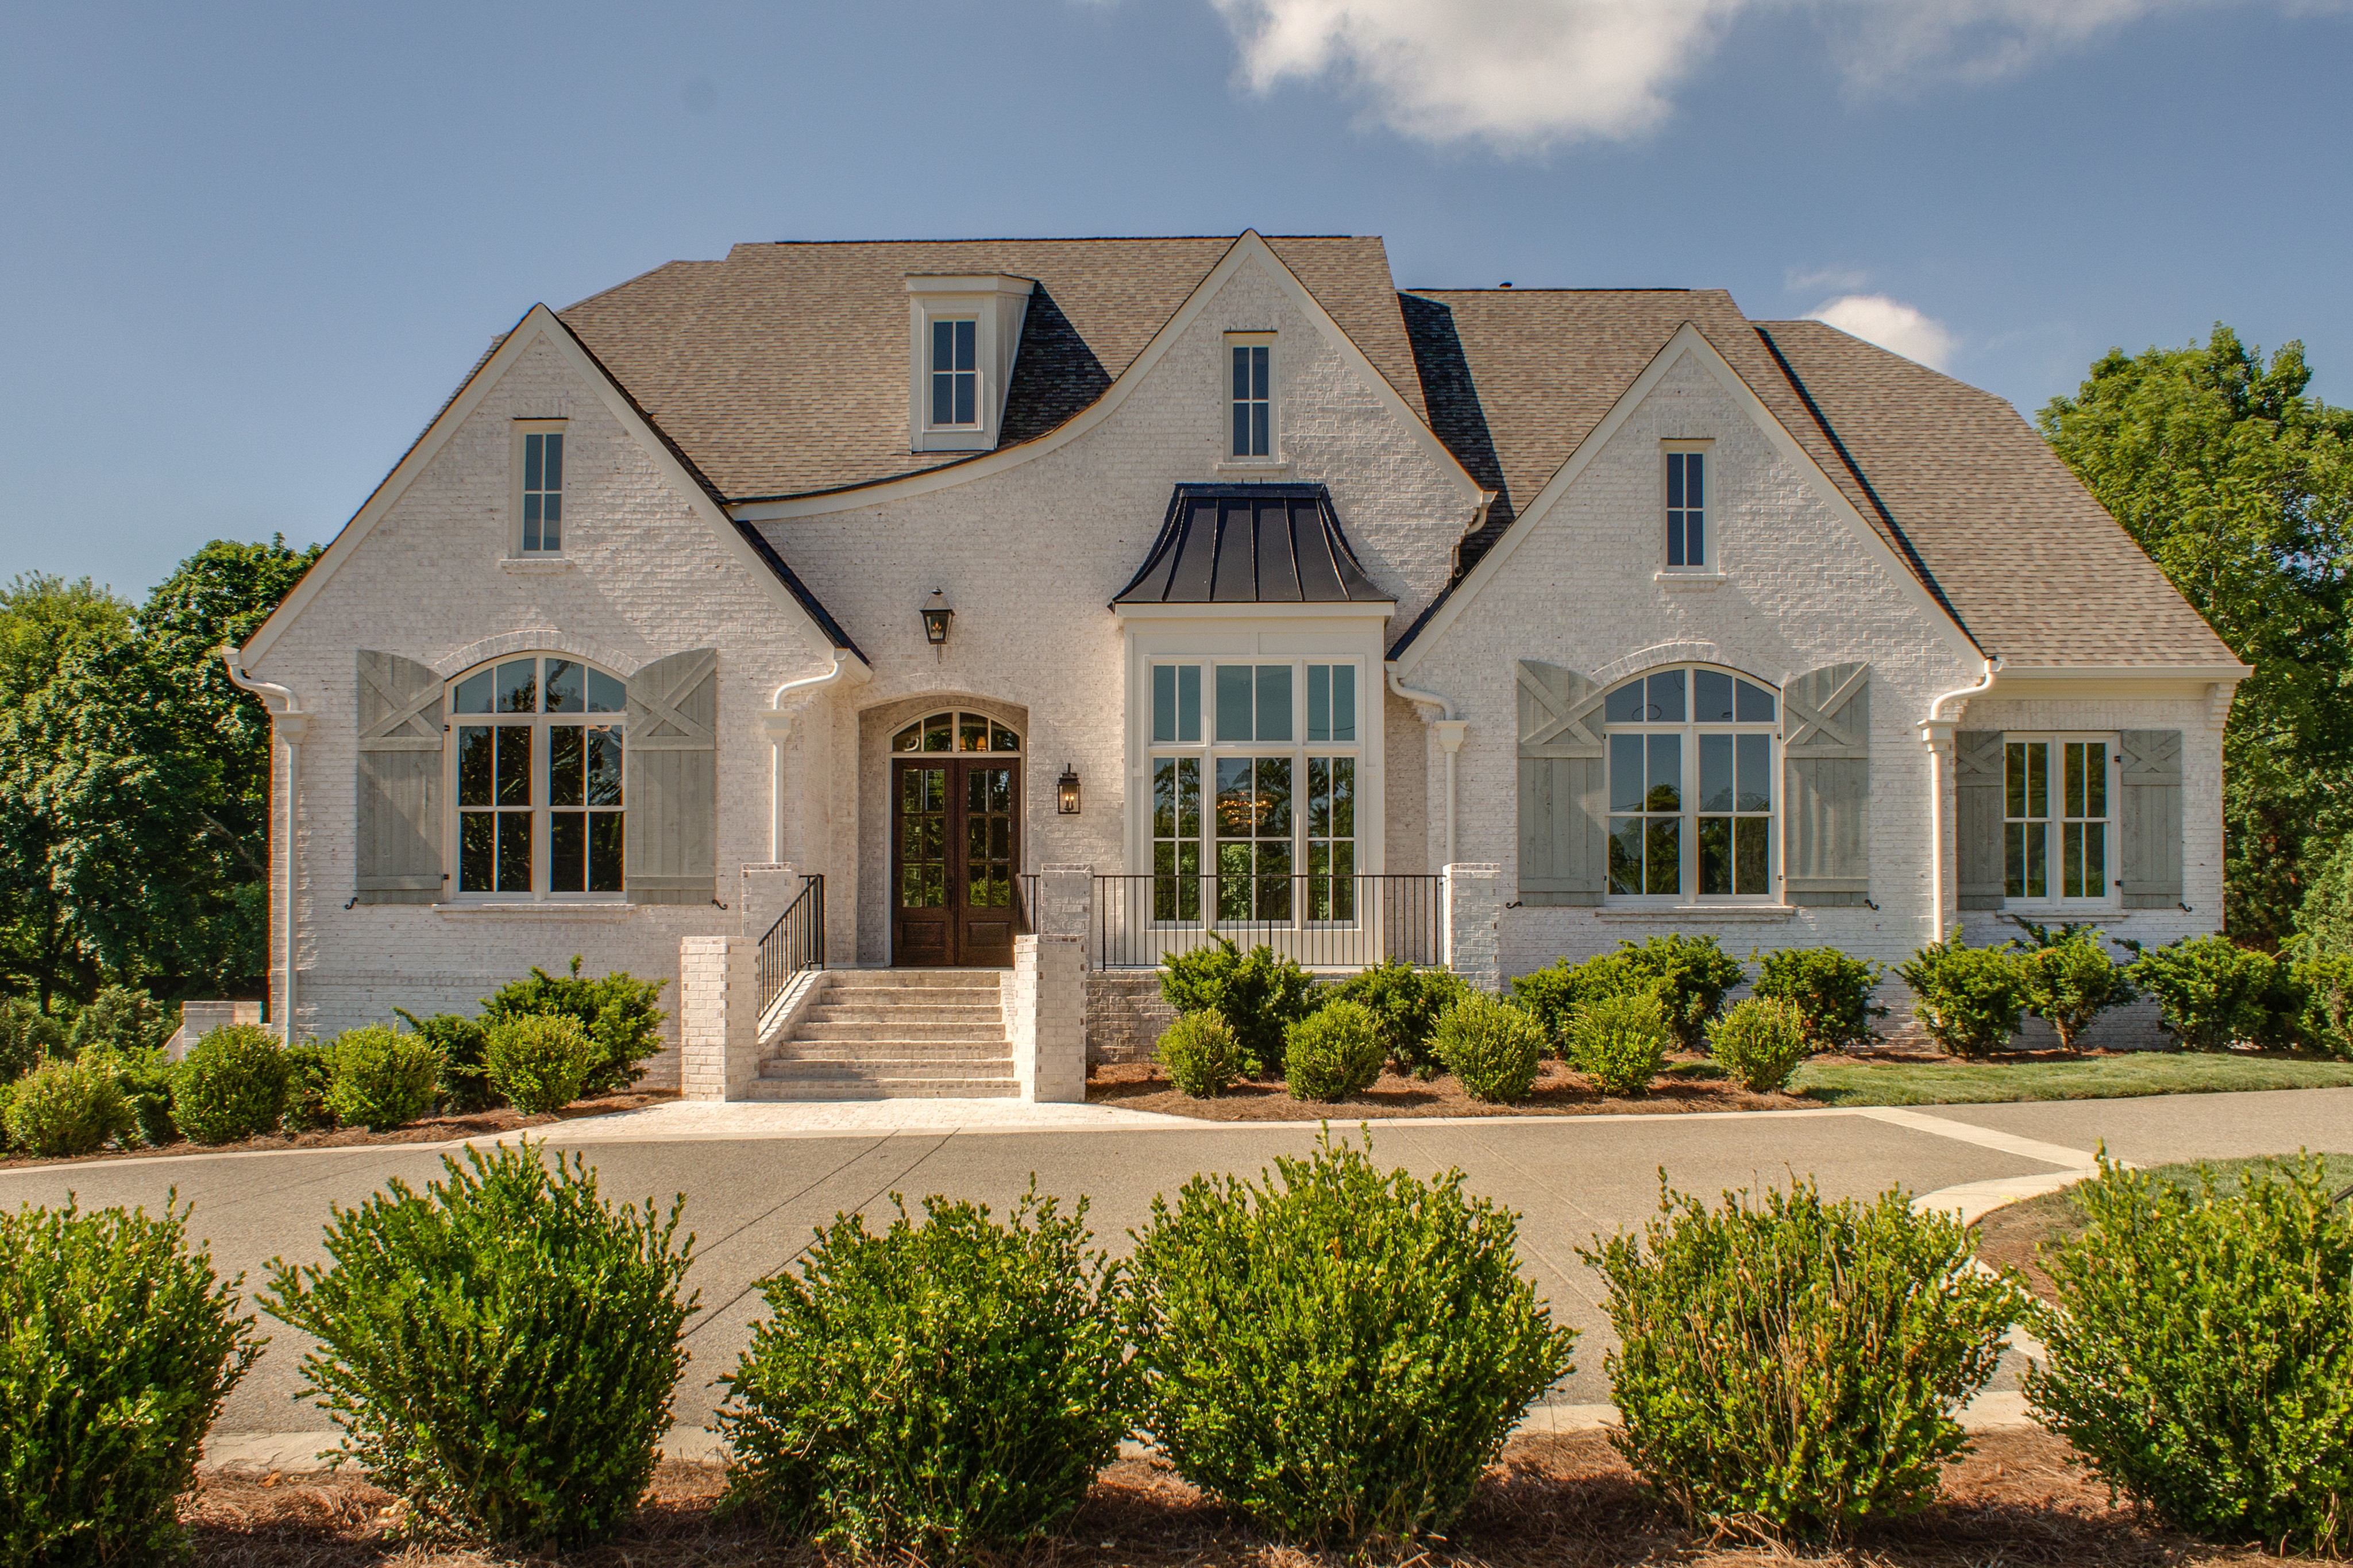 Large New homes and home construction by fine home builder in Brentwood, Franklin, and Thompson Station TN with Custom Home Design